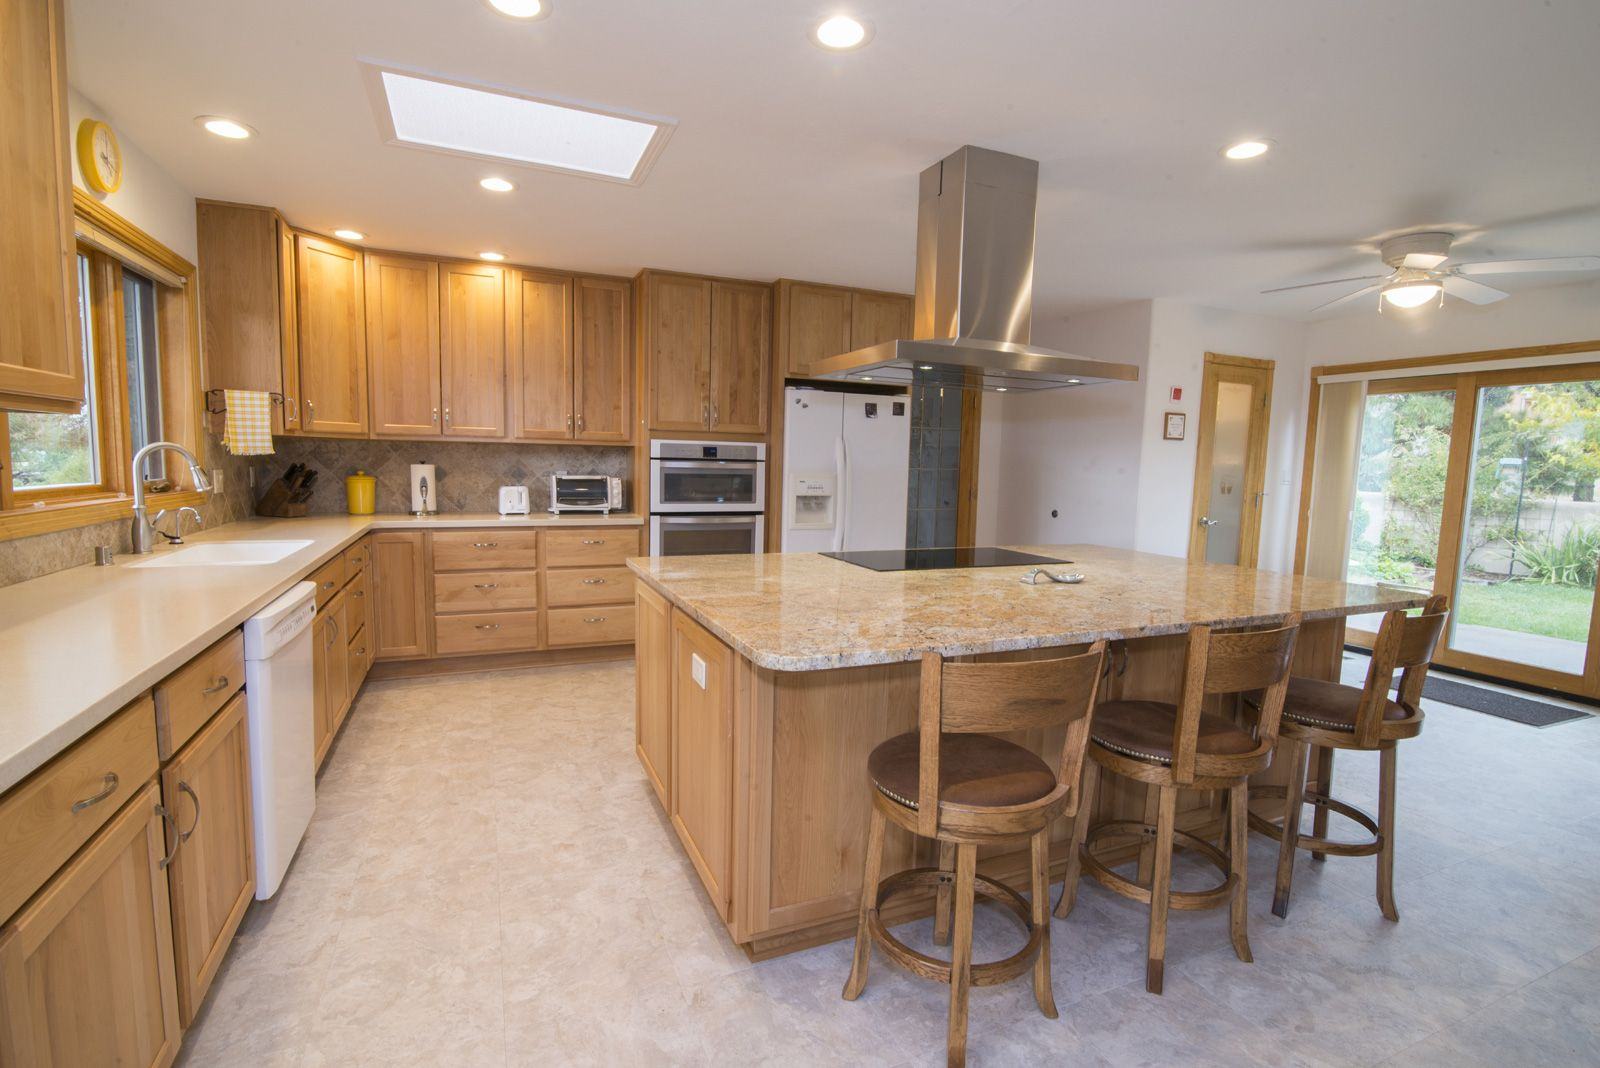 Kitchen Remodeling Kitchen Cabinets Expert In Santa Fe Albuquerque In 2020 Kitchen Cabinet Remodel Kitchen Remodel Kitchen Island With Seating